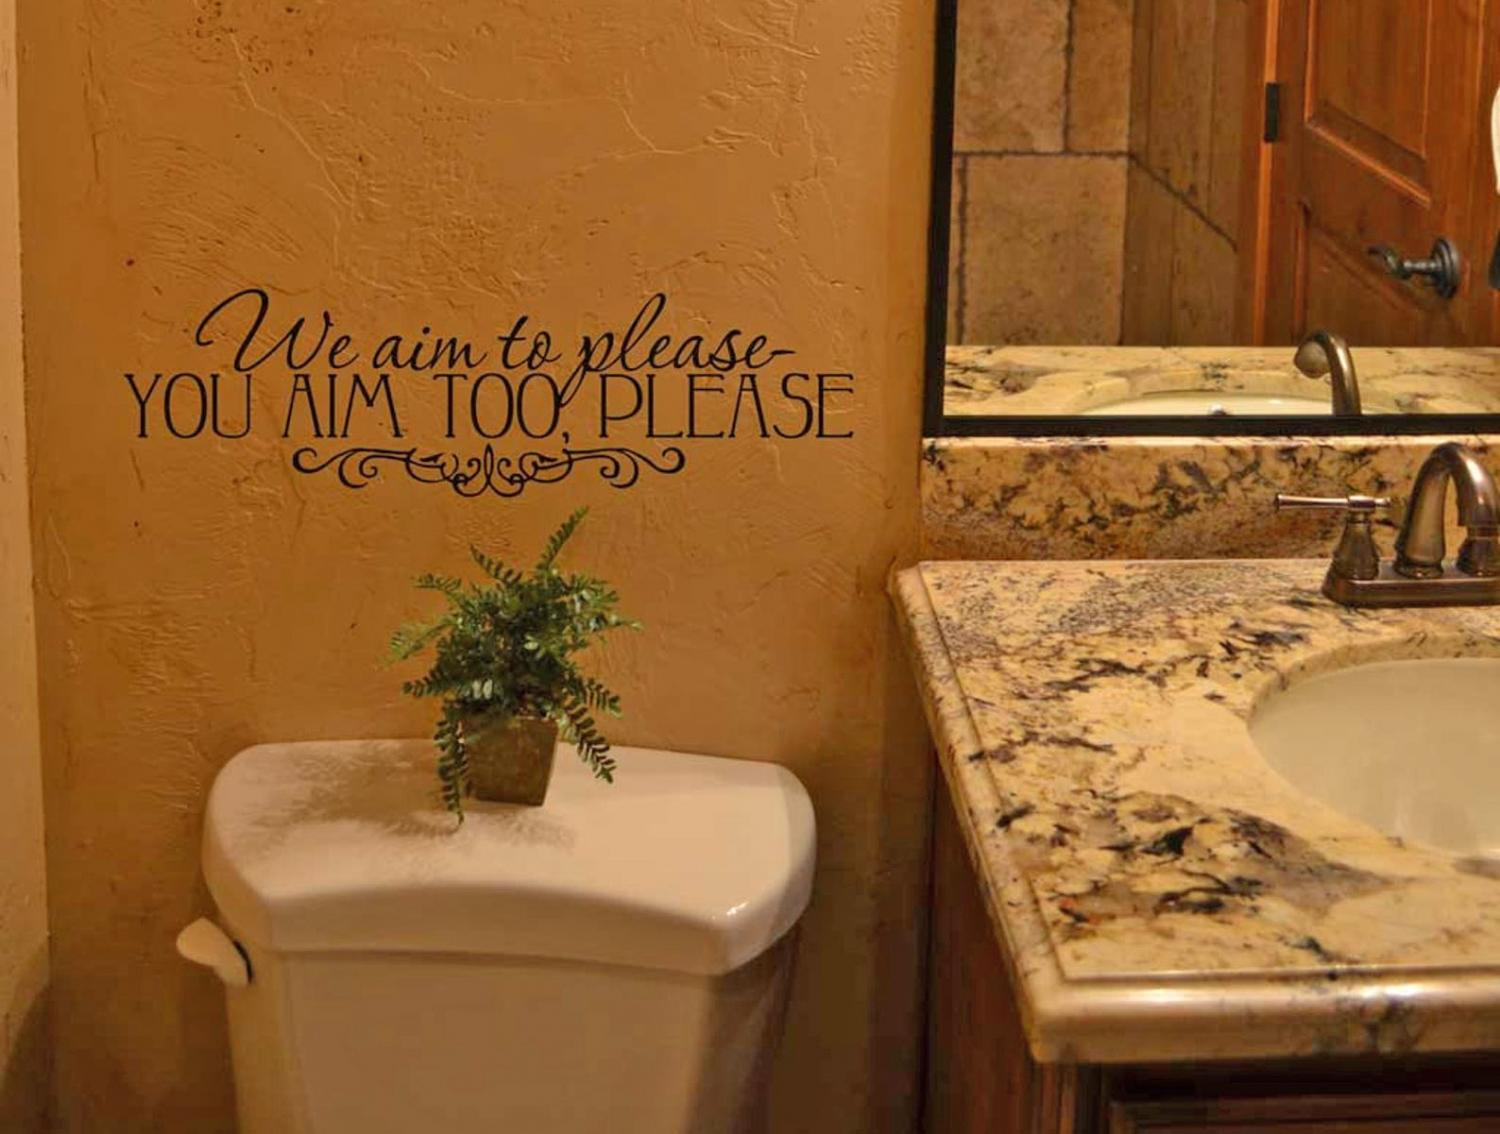 We Aim To Please, You Aim Too, Please - Funny Bathroom Wall Decal